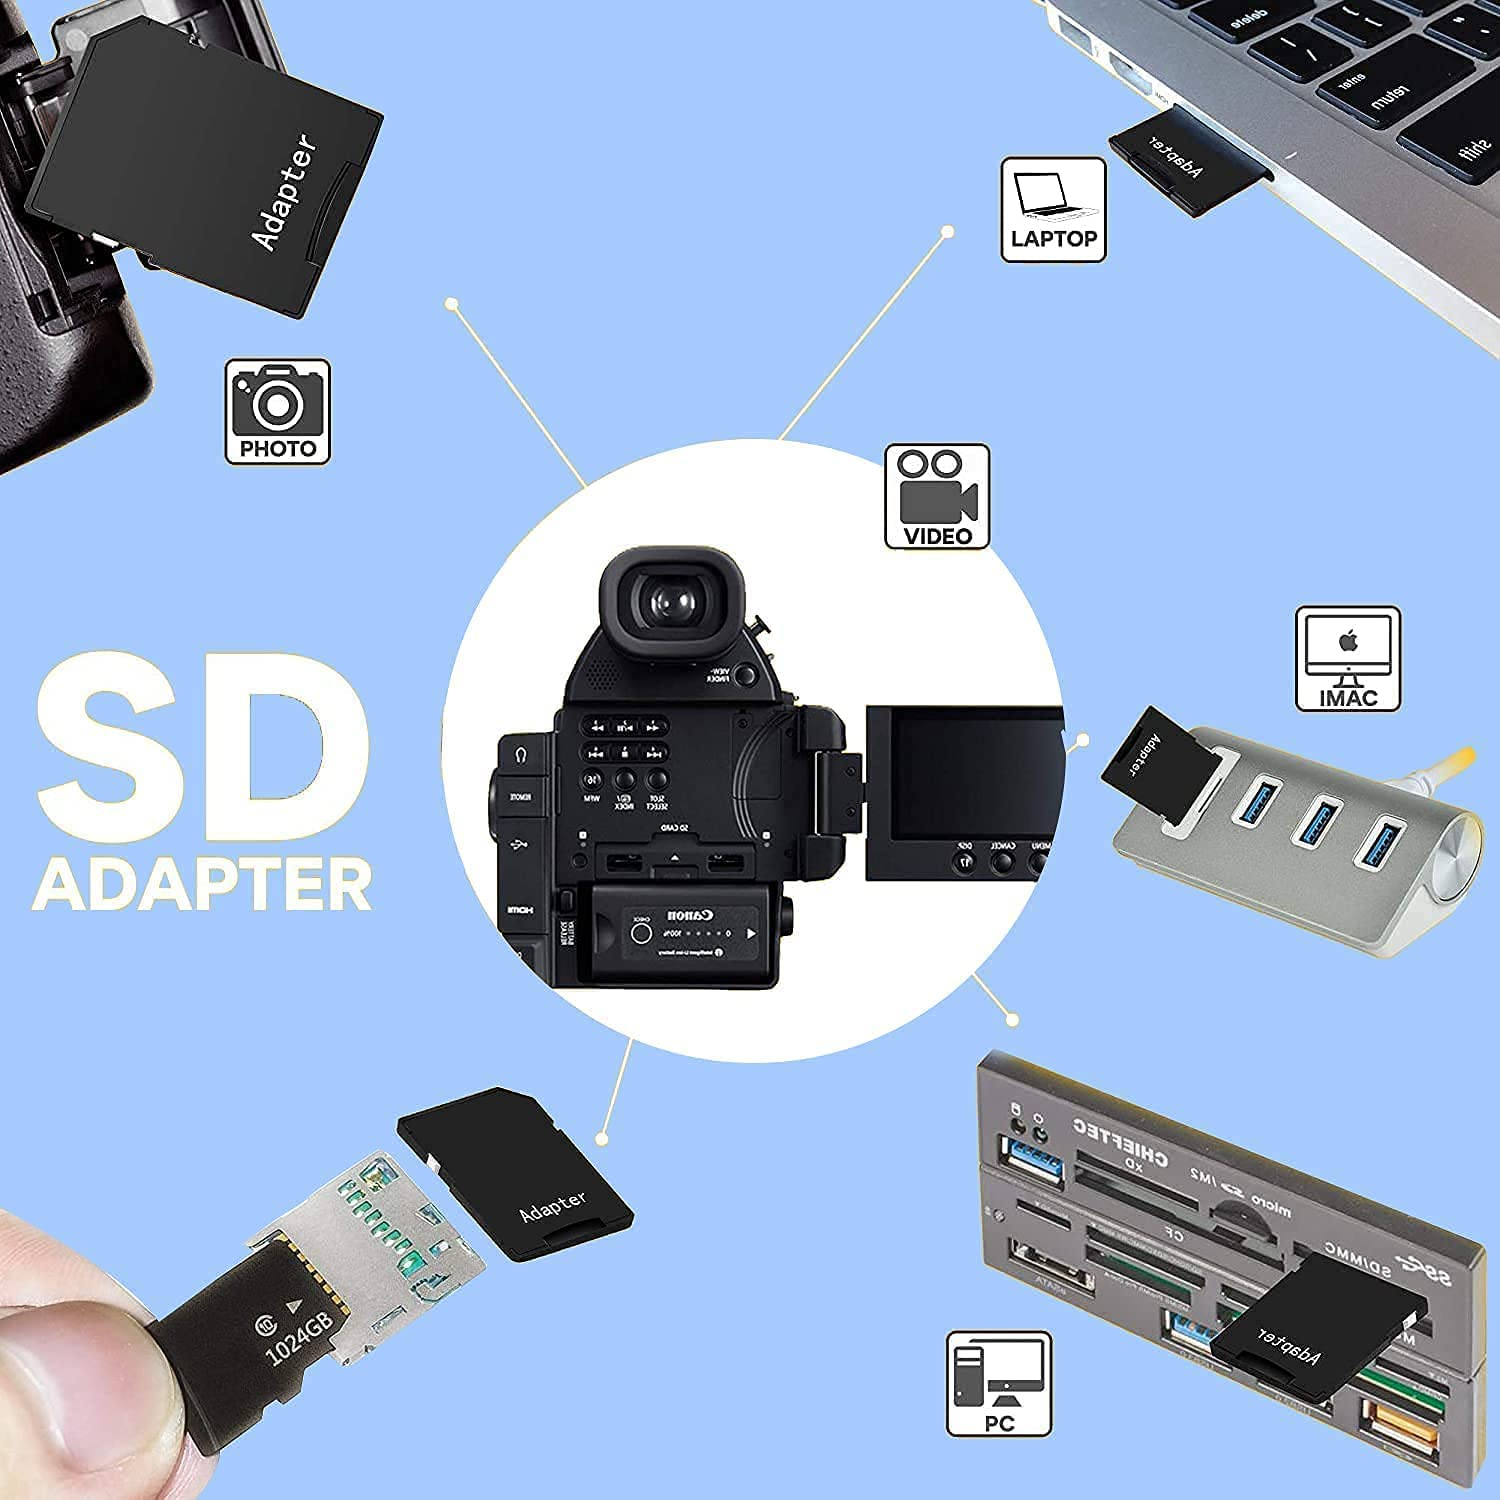 Micro SD Card Reader, Memory Card Reader, Comes with 1024GB Micro SD Card and Free Adapter (A)